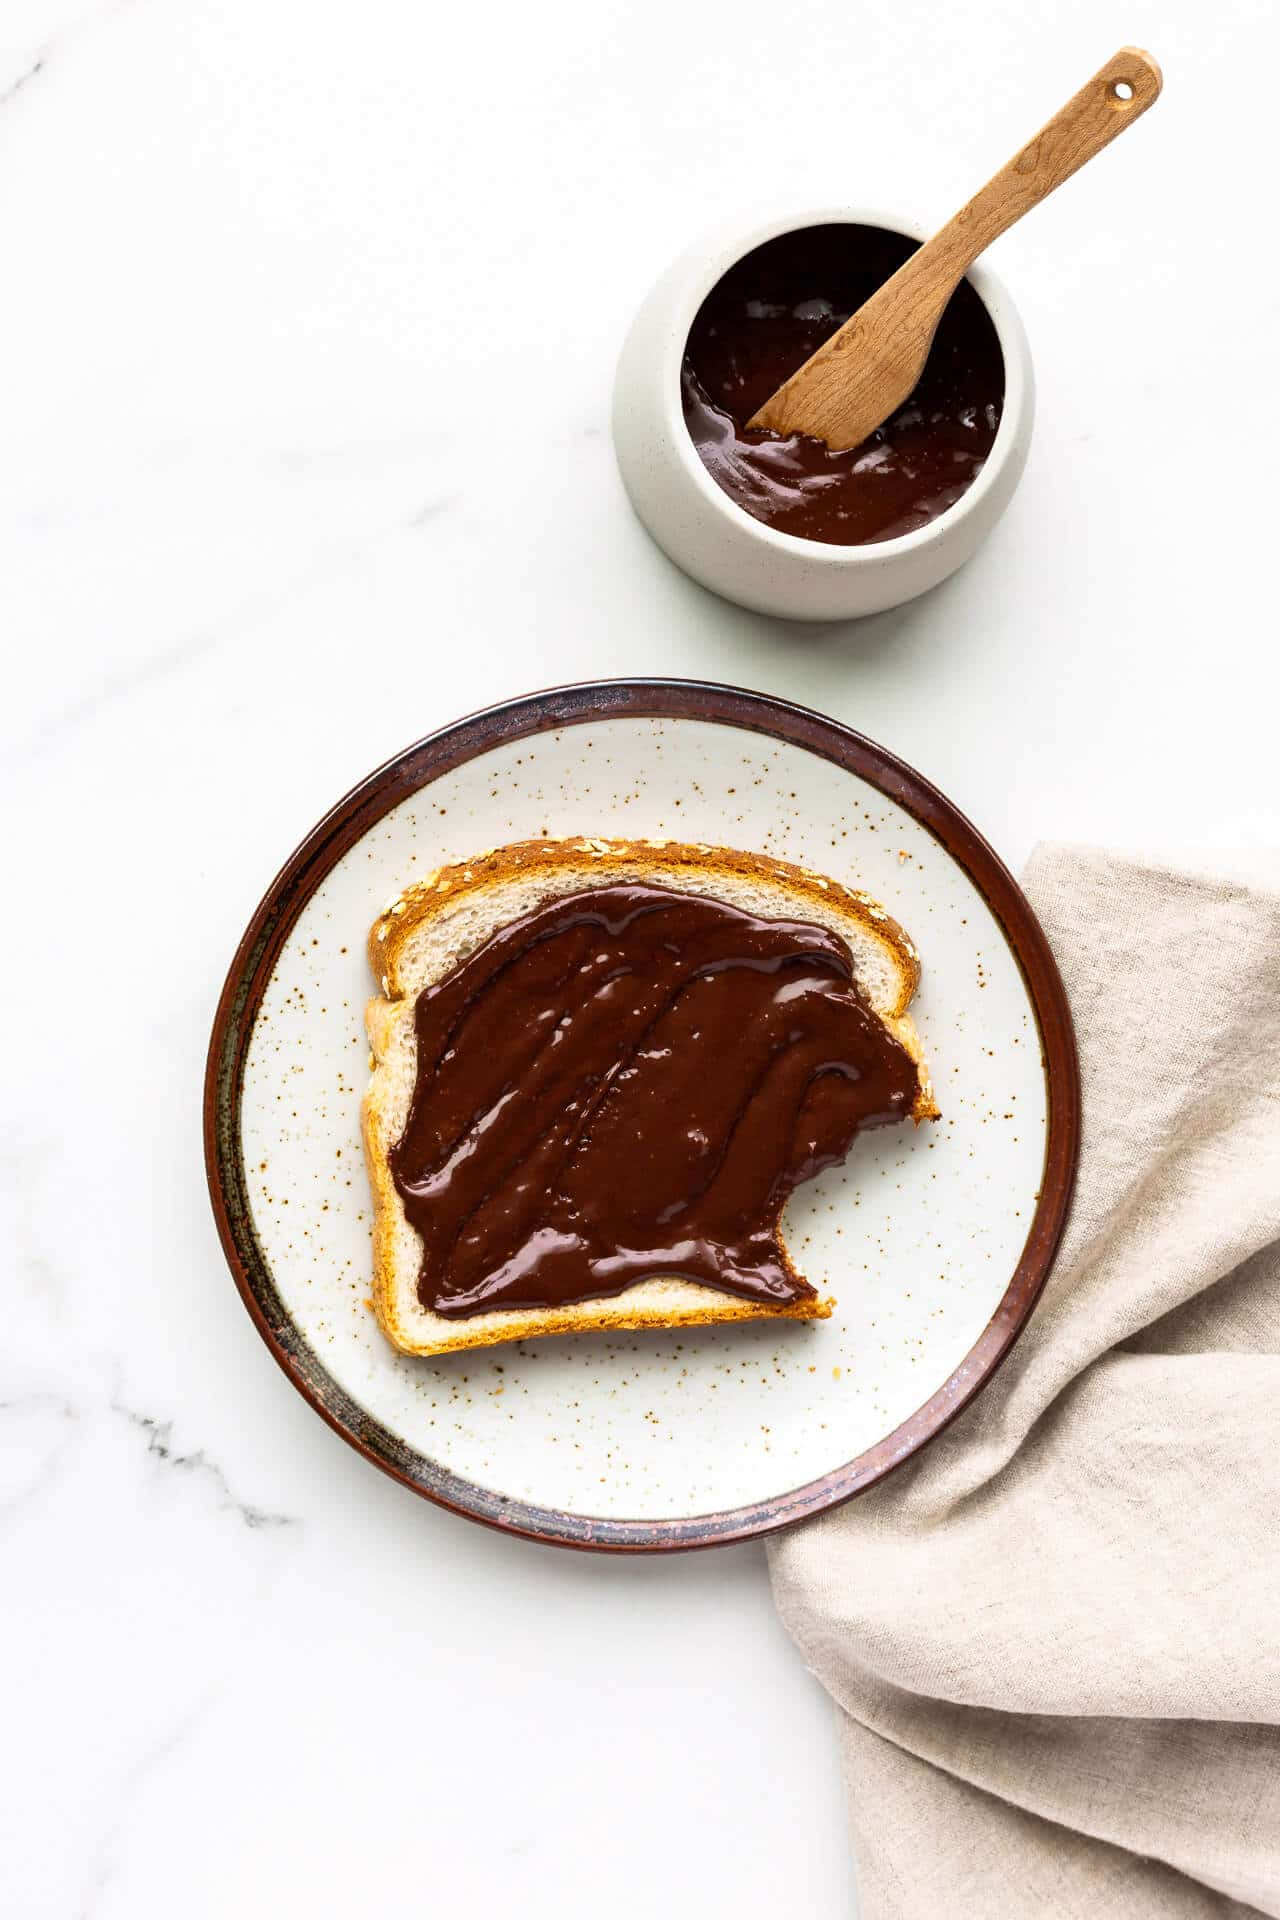 Chocolate peanut butter spread on white bread, with bite taken out. Set on a speckled ceramic plate with a beige linen napkin and a bowl of the spread with wooden knife.